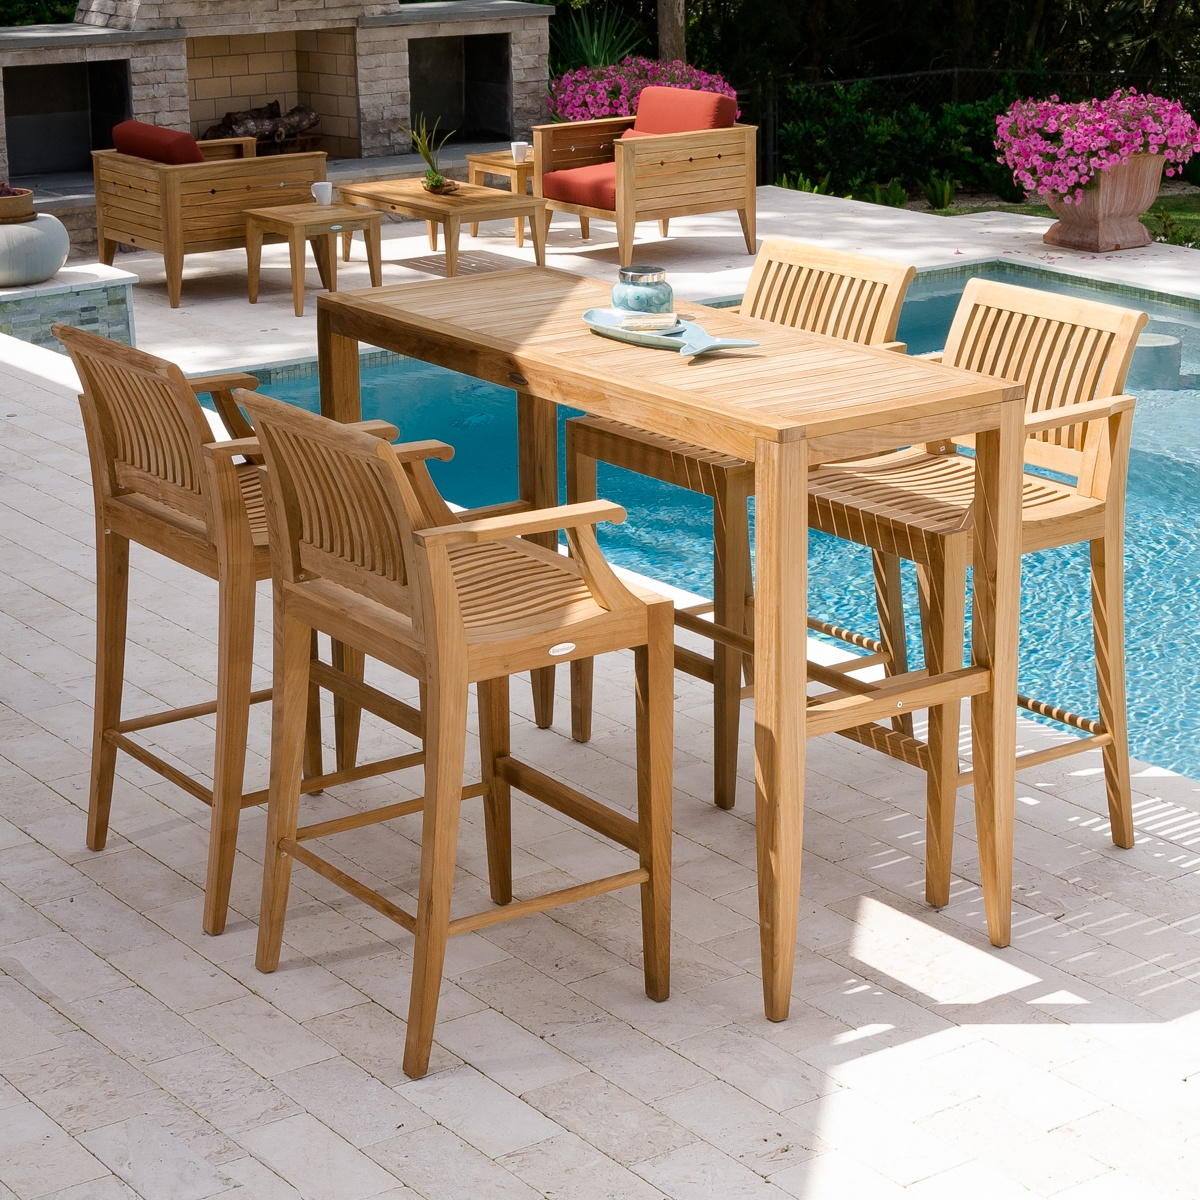 Teak Bar Furniture Westminster Teak Outdoor Furniture